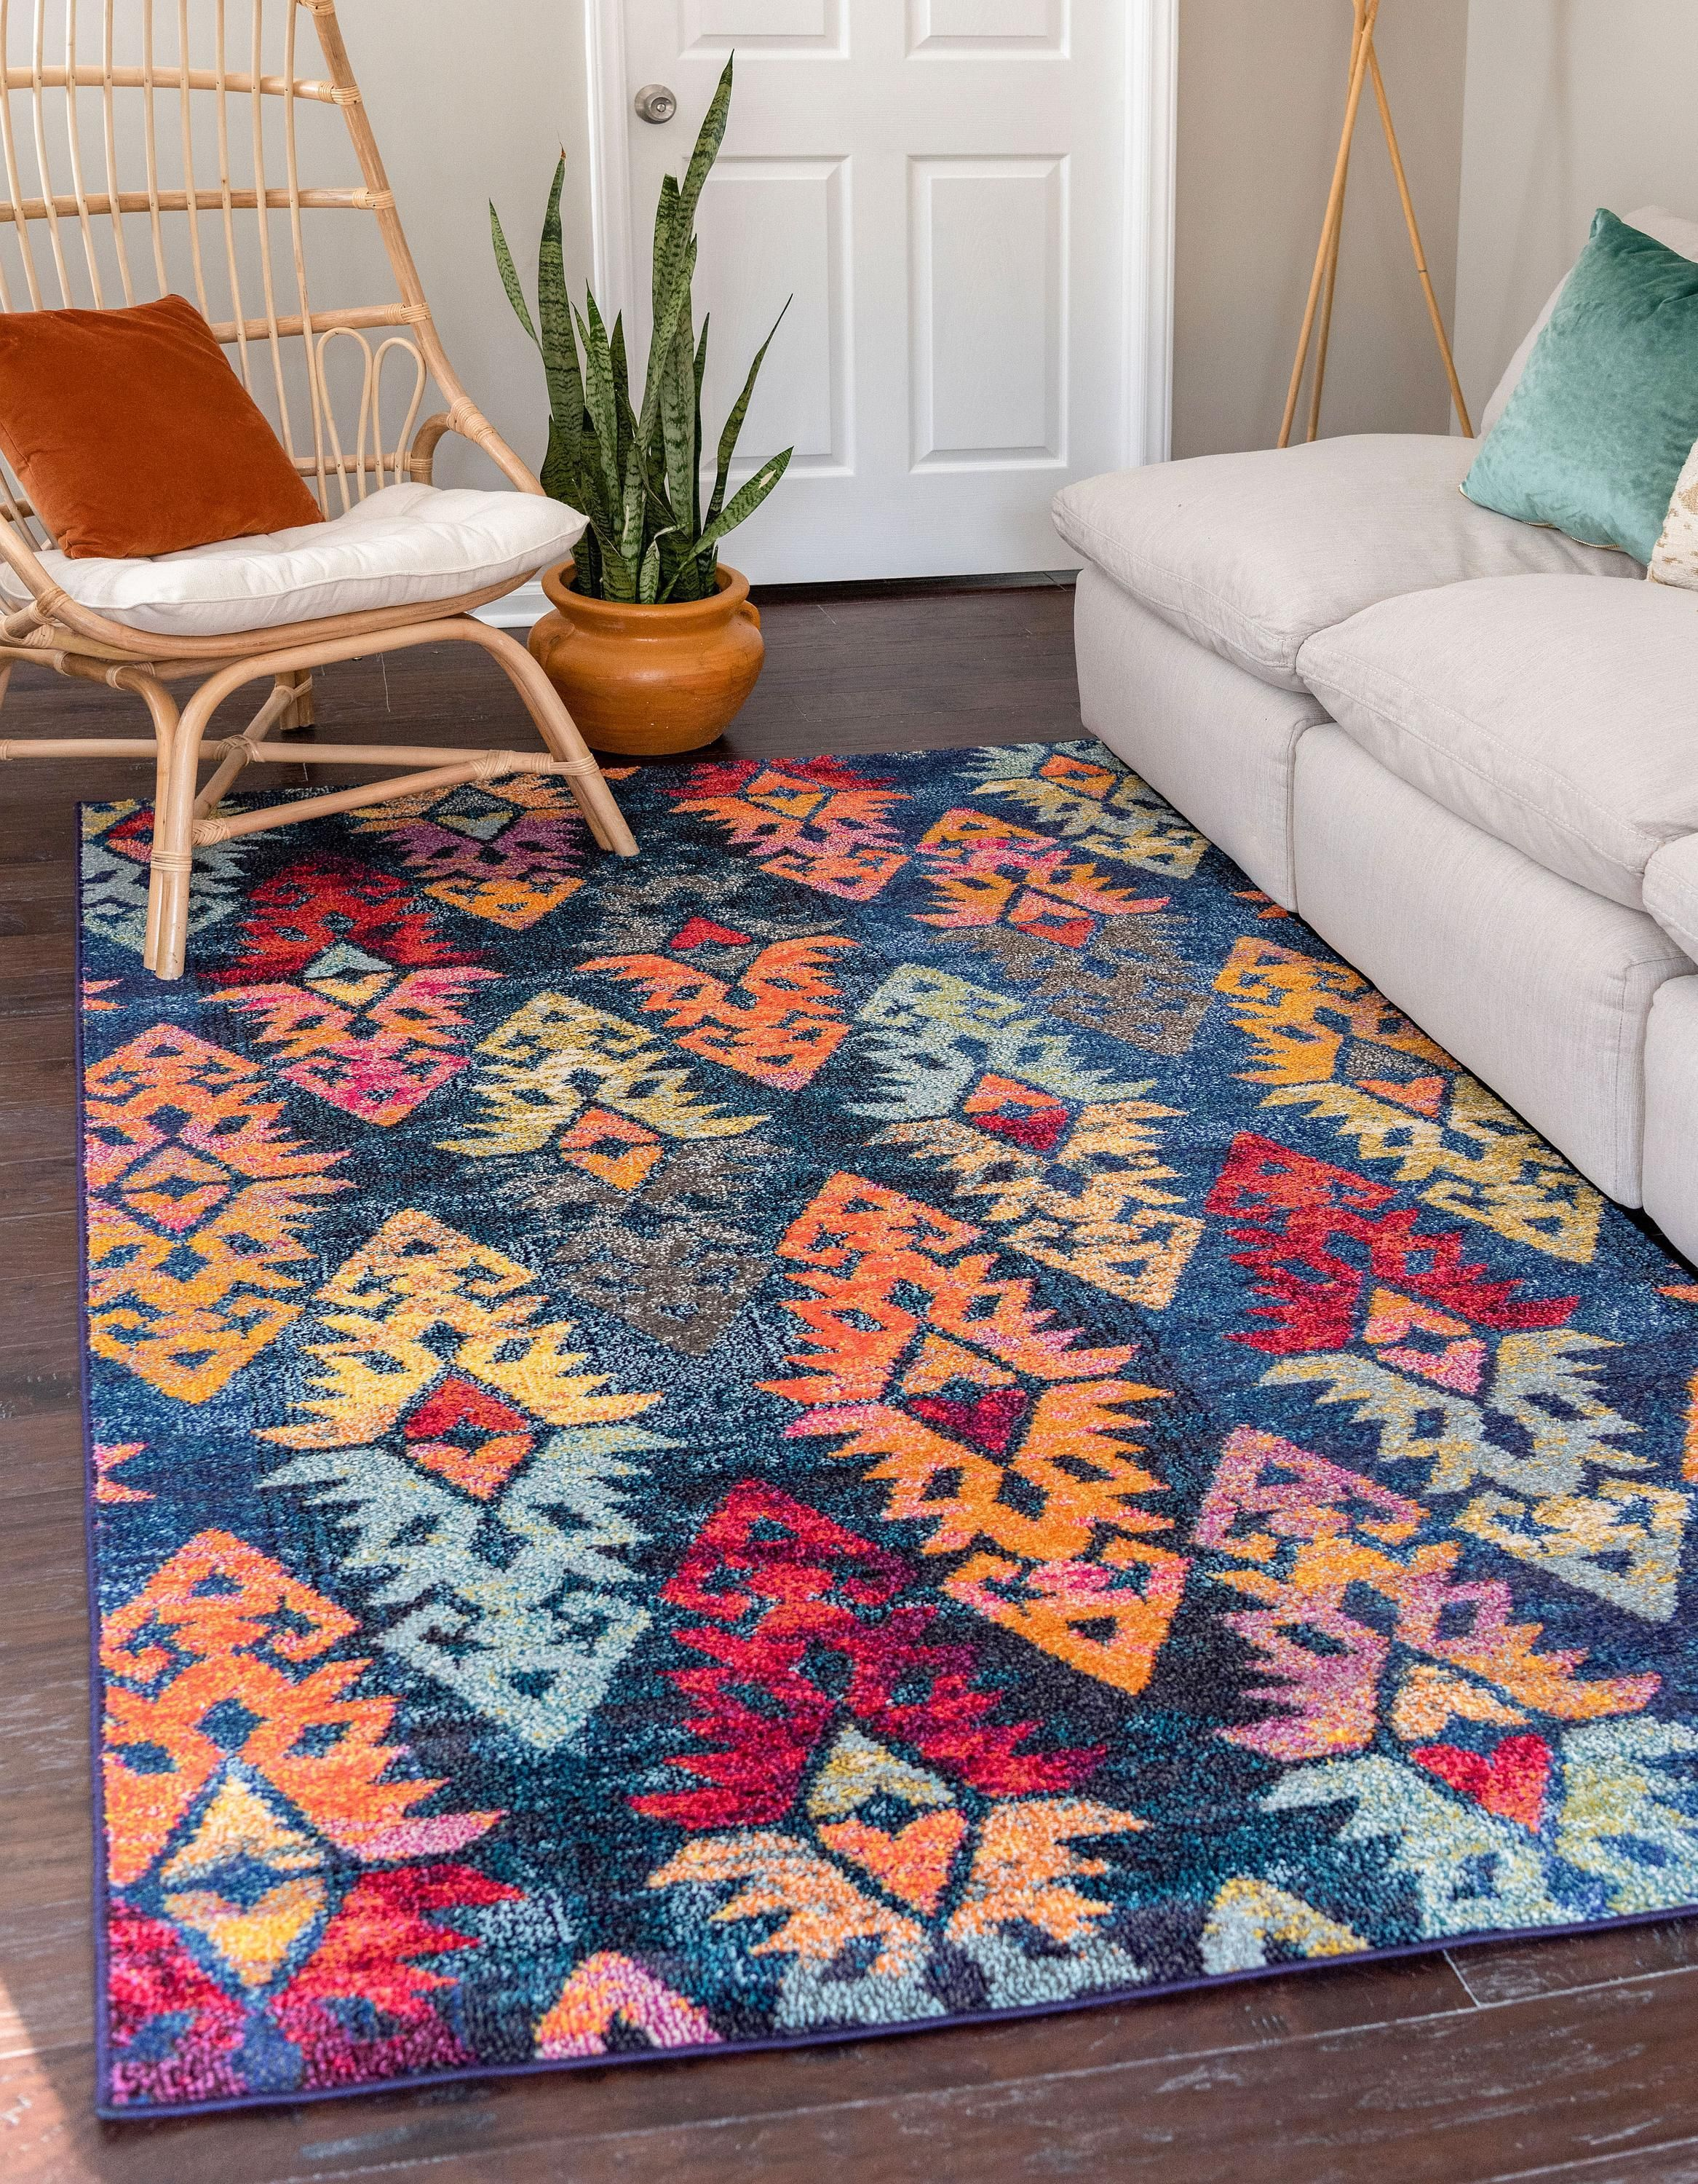 Navy Blue 9 X 12 Santa Fe Rug Affiliate Blue Navy Rug Fe Santa Sponsored In 2019 Rugs Area Rugs Shed Colours